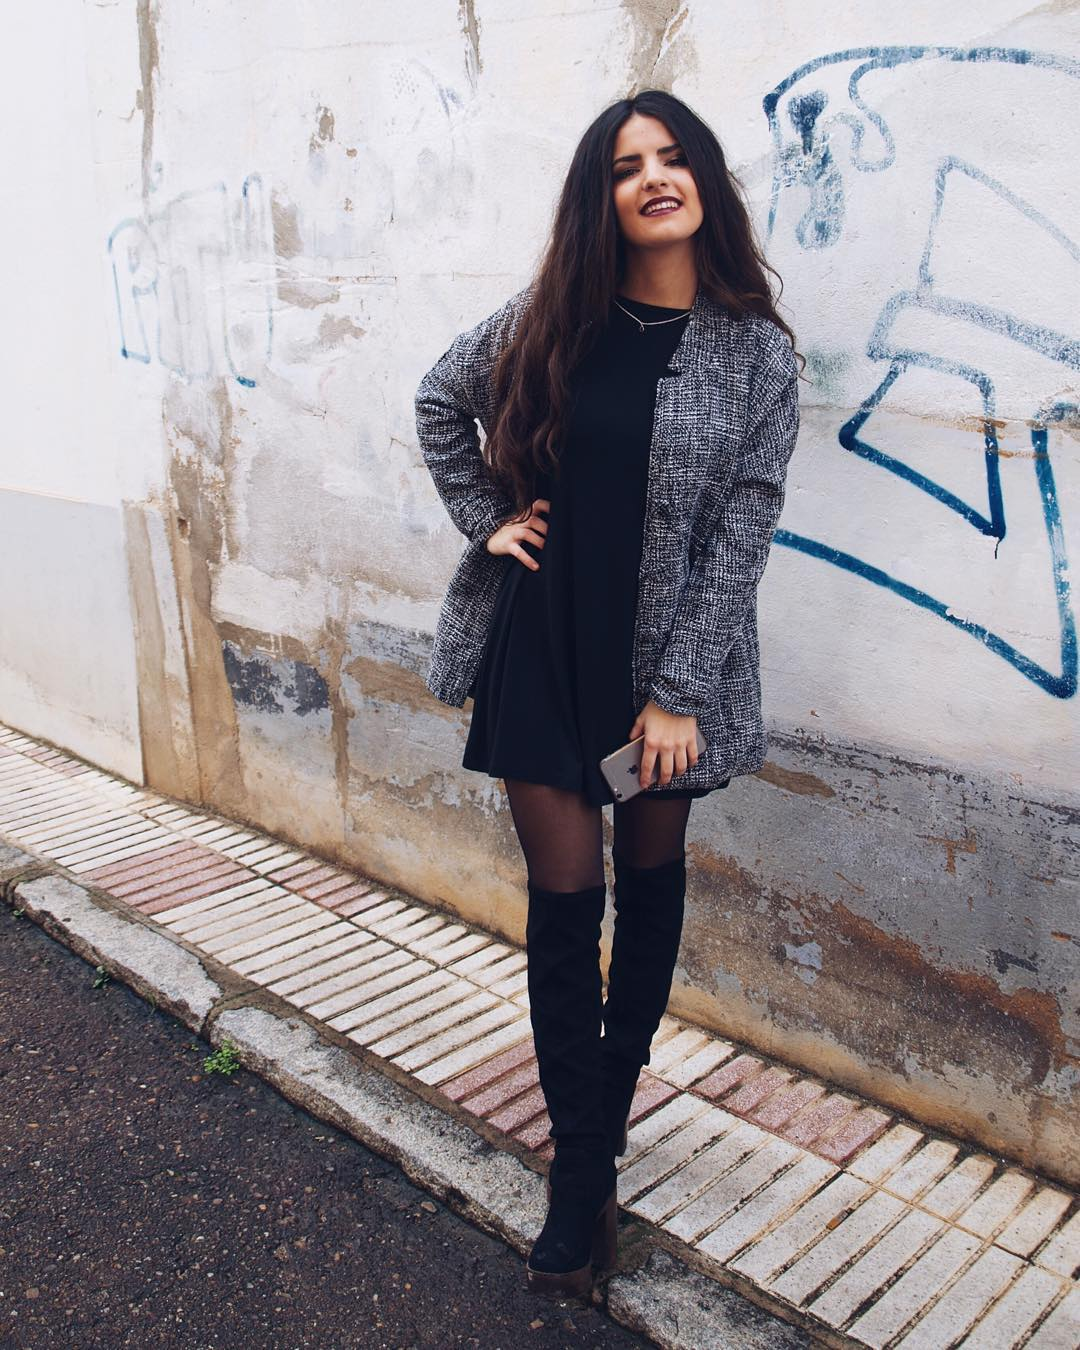 MSORIANOB BLOGGER BEING A BABE IN EGO SHOES